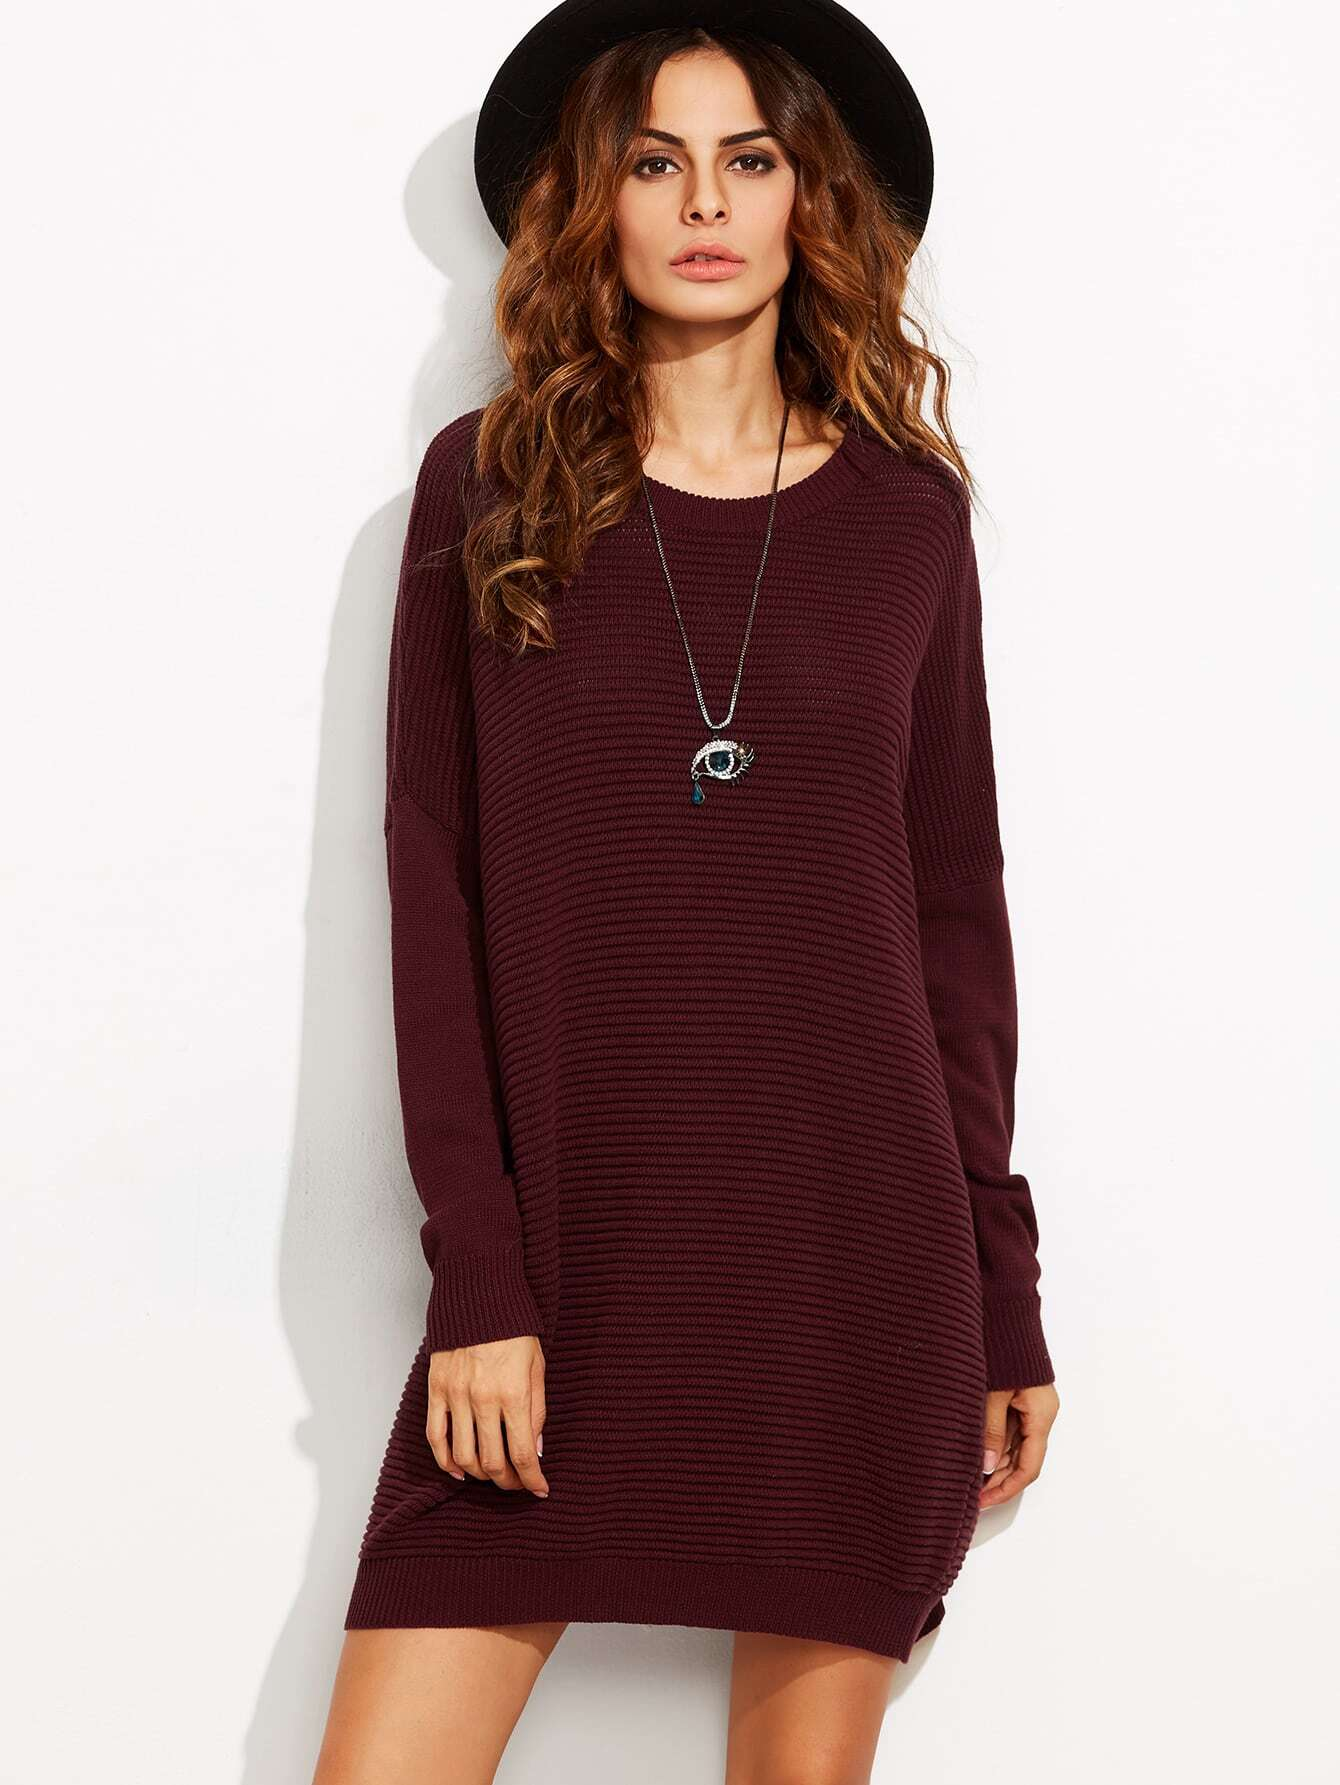 Burgundy Drop Shoulder Ribbed Cocoon Sweater Dress dress160812707